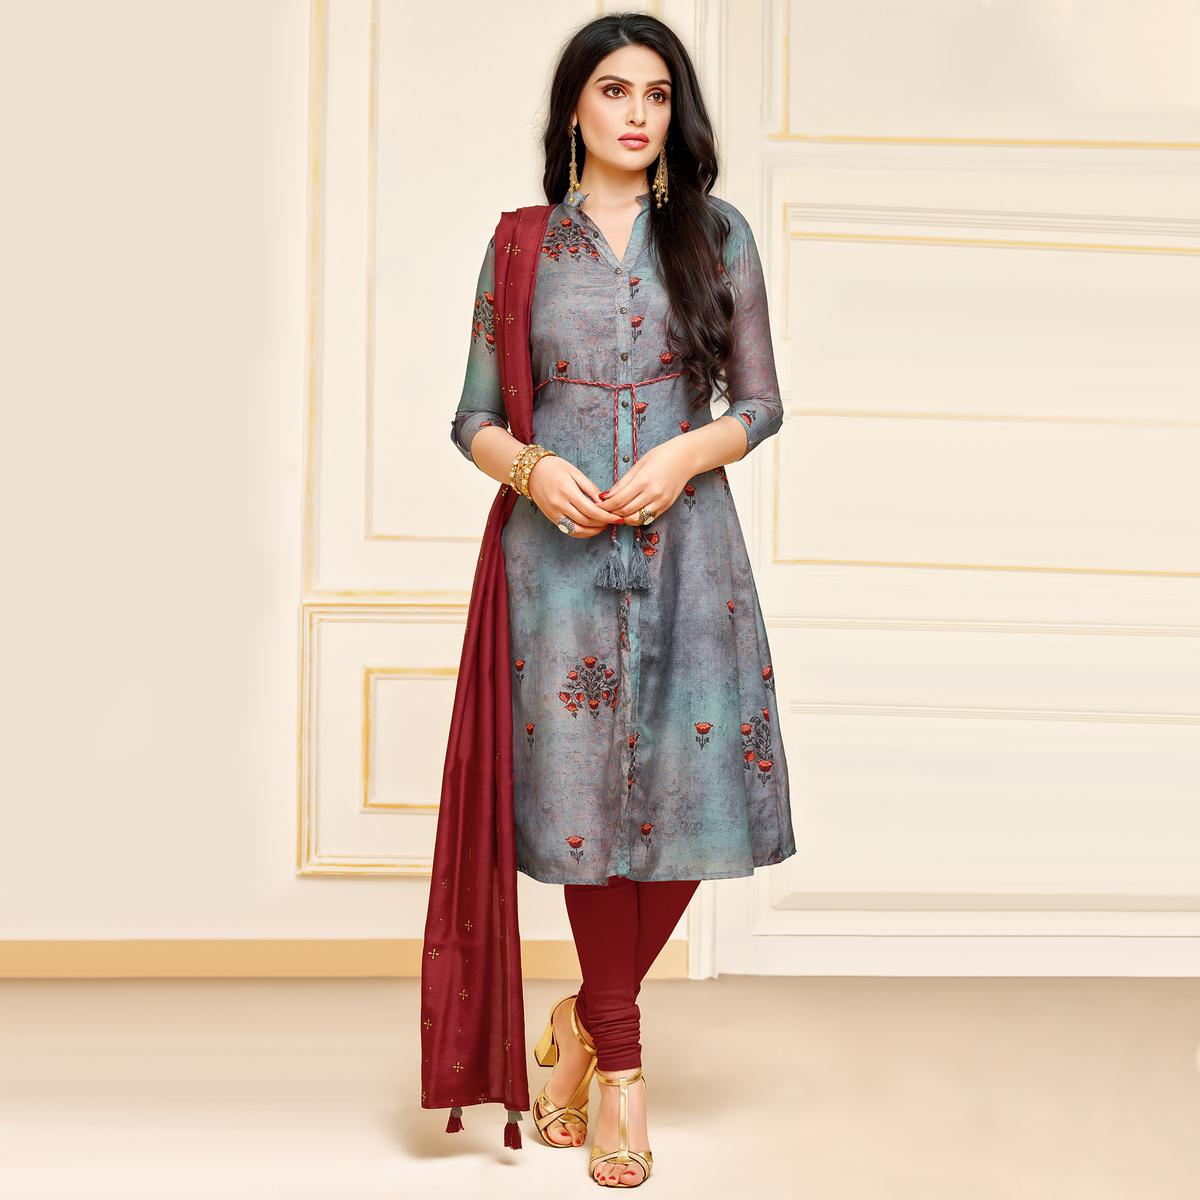 Mesmeric Grey Colored Partywear Digital Printed Muslin Suit